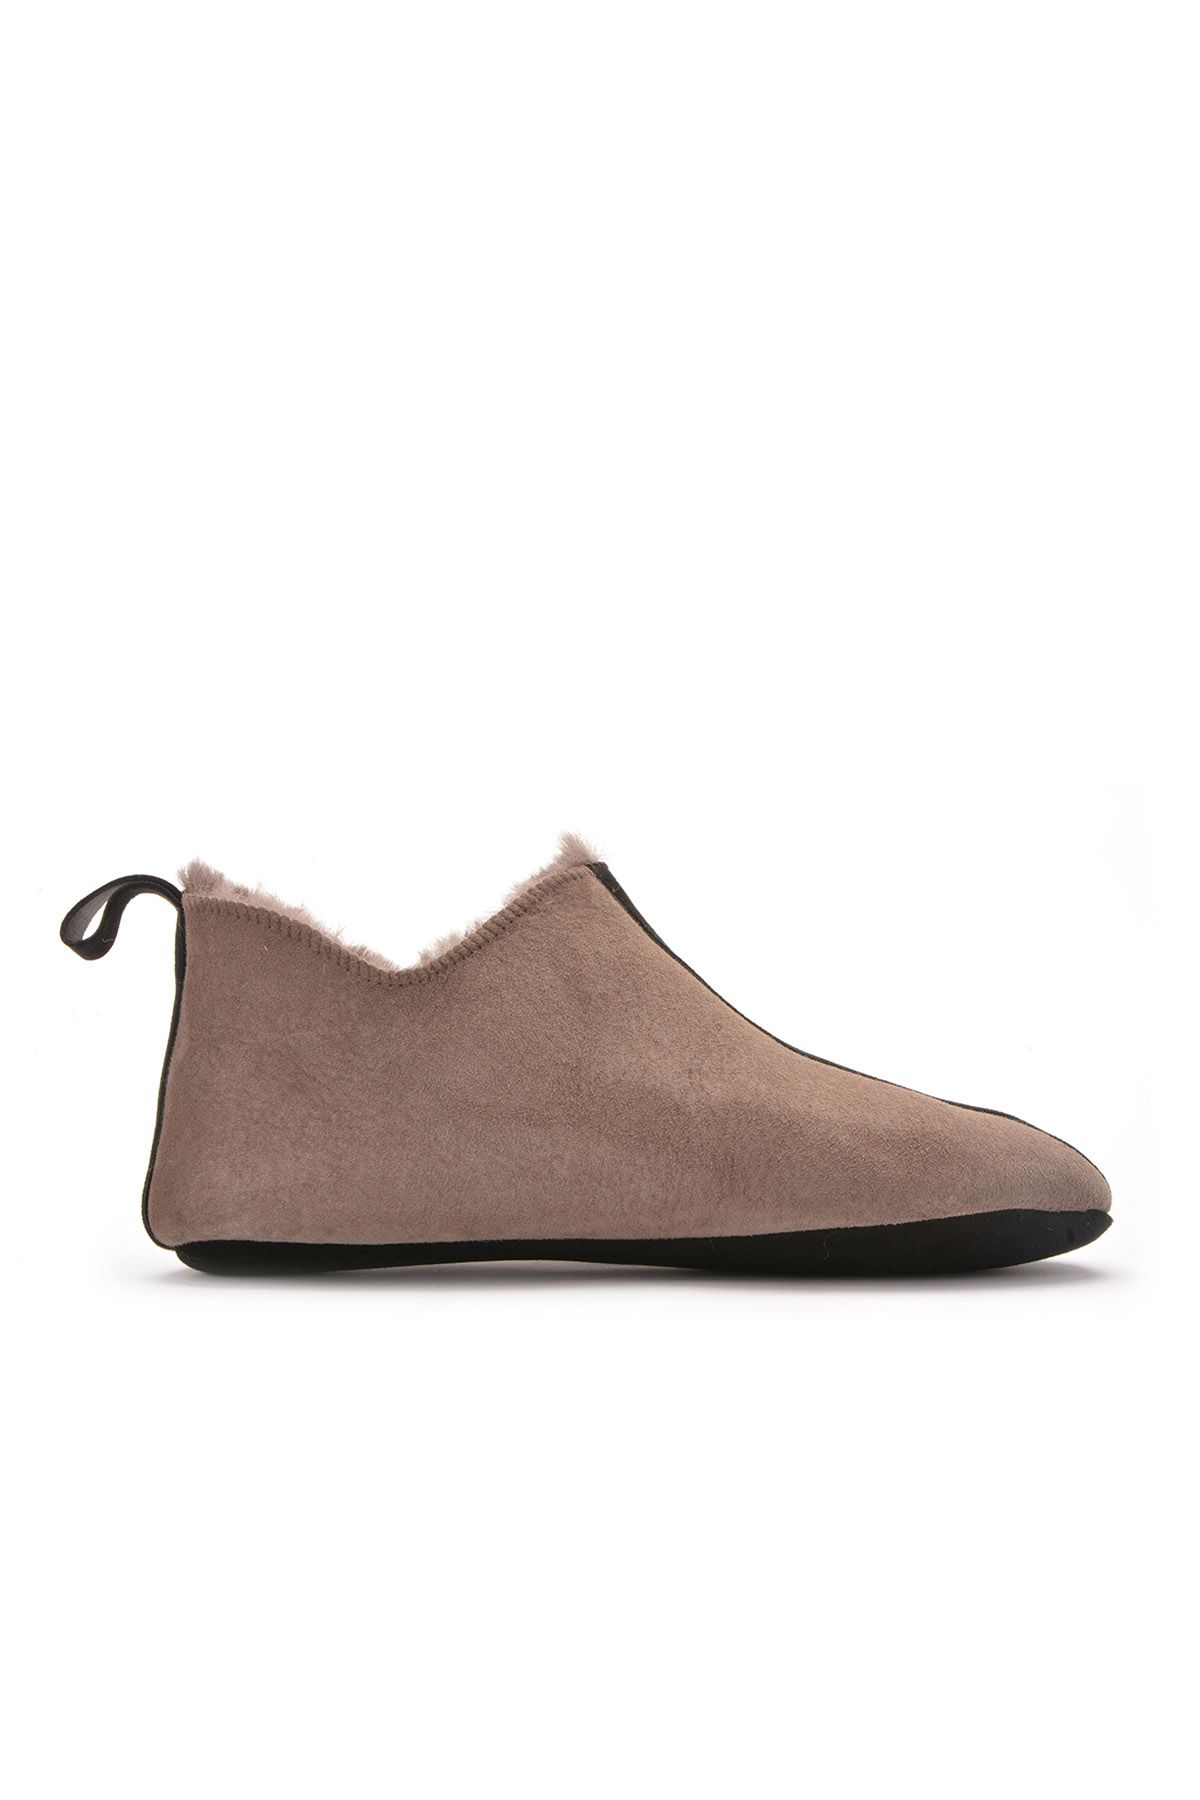 Pegia Women House-shoes From Genuine Fur Mink